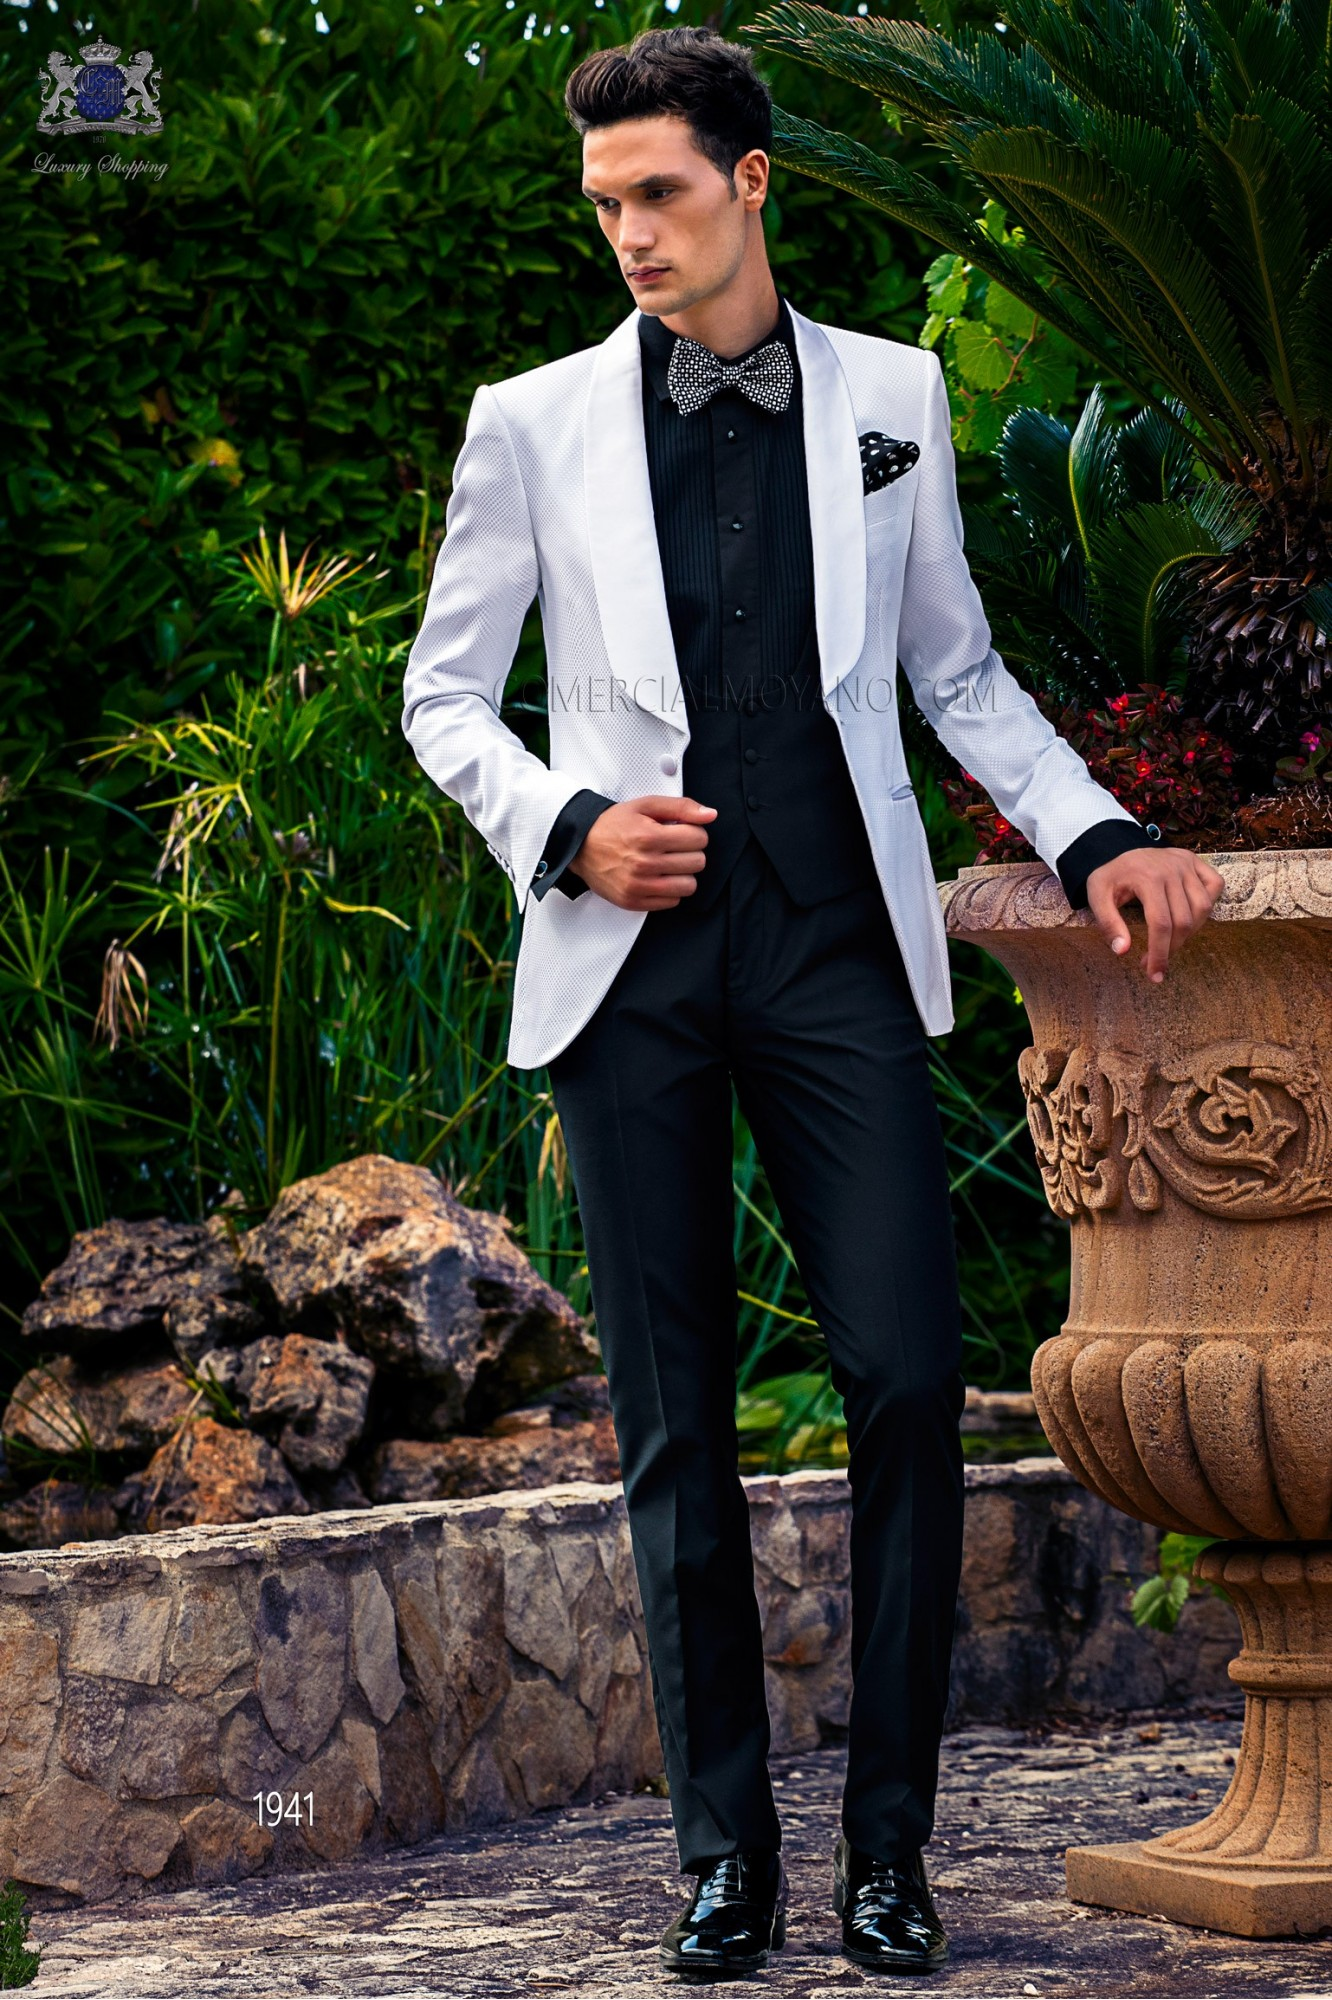 Bespoke white check dinner jacket combined with a black trousers model 1941 Ottavio Nuccio Gala